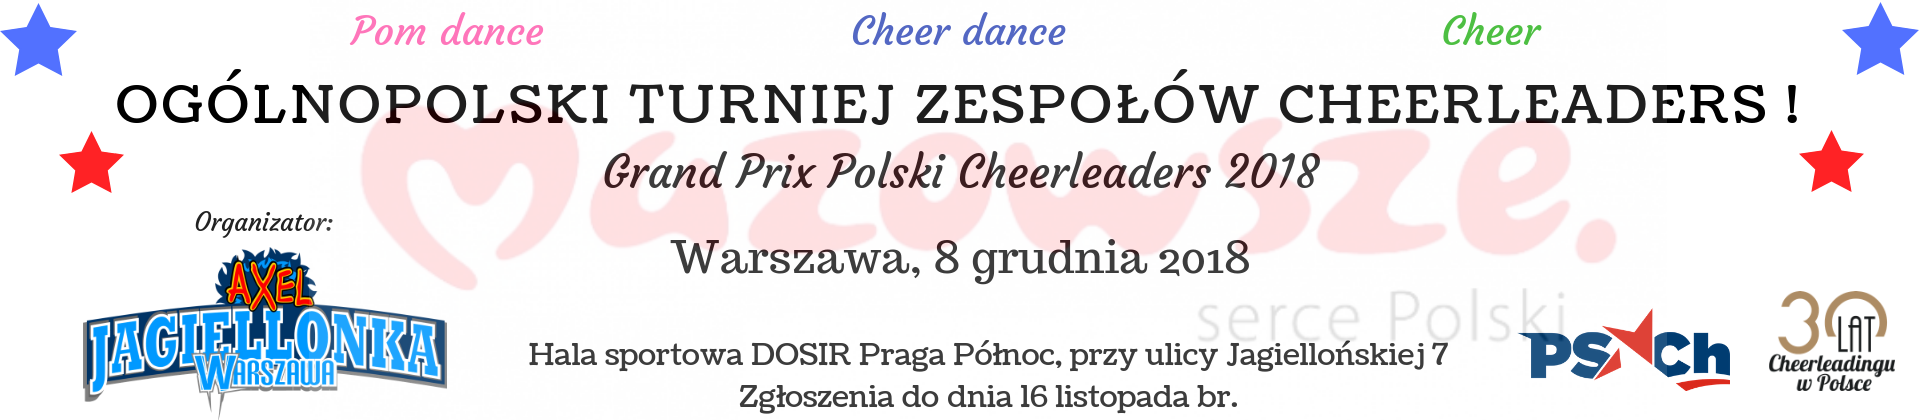 Grand Prix Polski Cheerleaders 2018 (6)